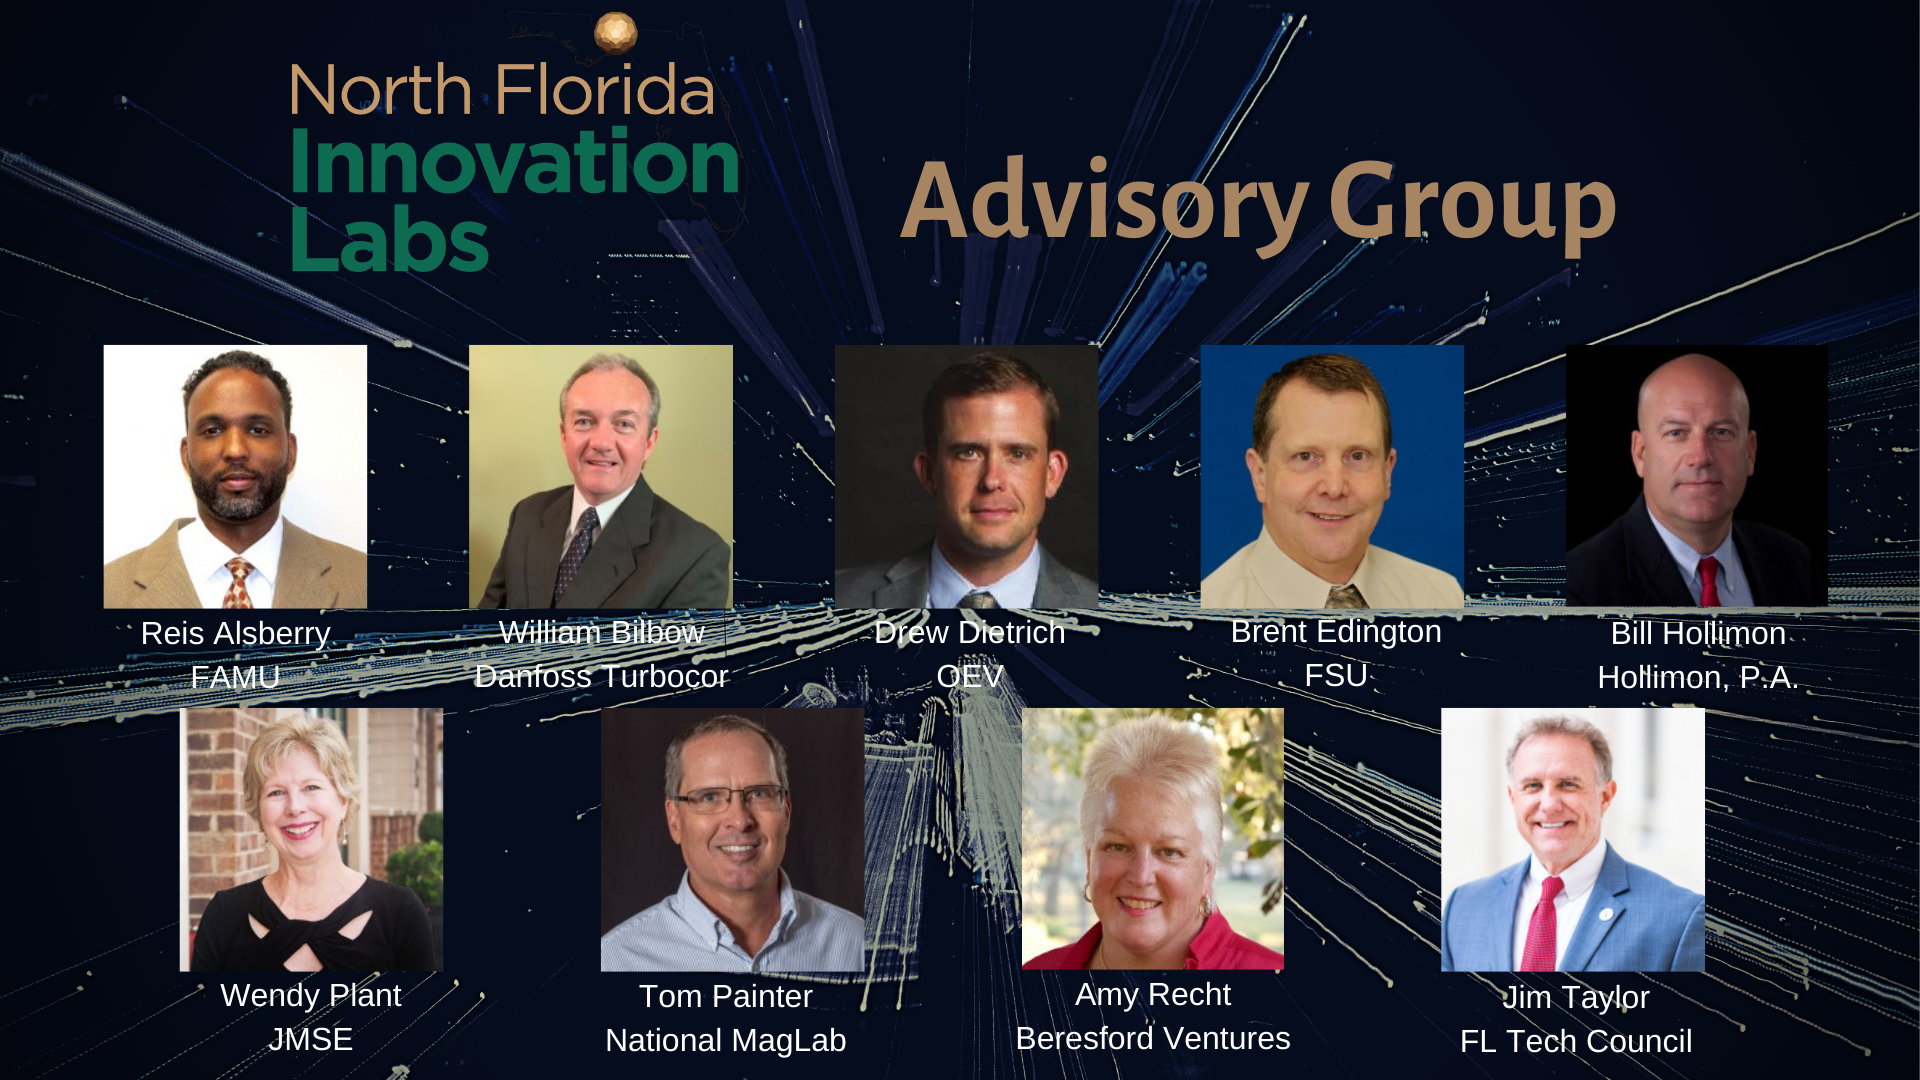 North Florida Innovation Labs Advisory Group